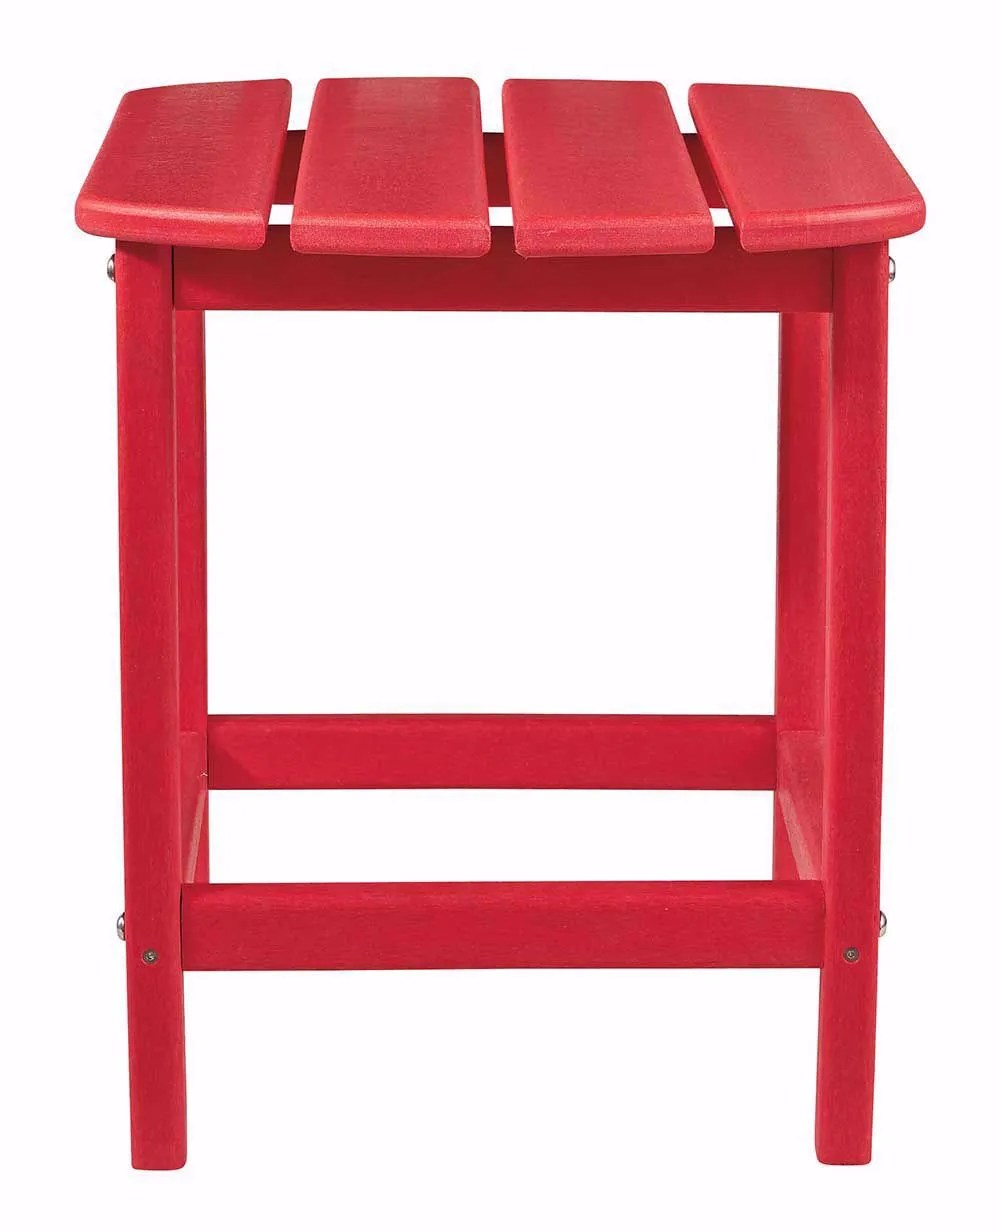 Red Adirondack Chairs Sundown Treasure Red Adirondack Chair With End Table